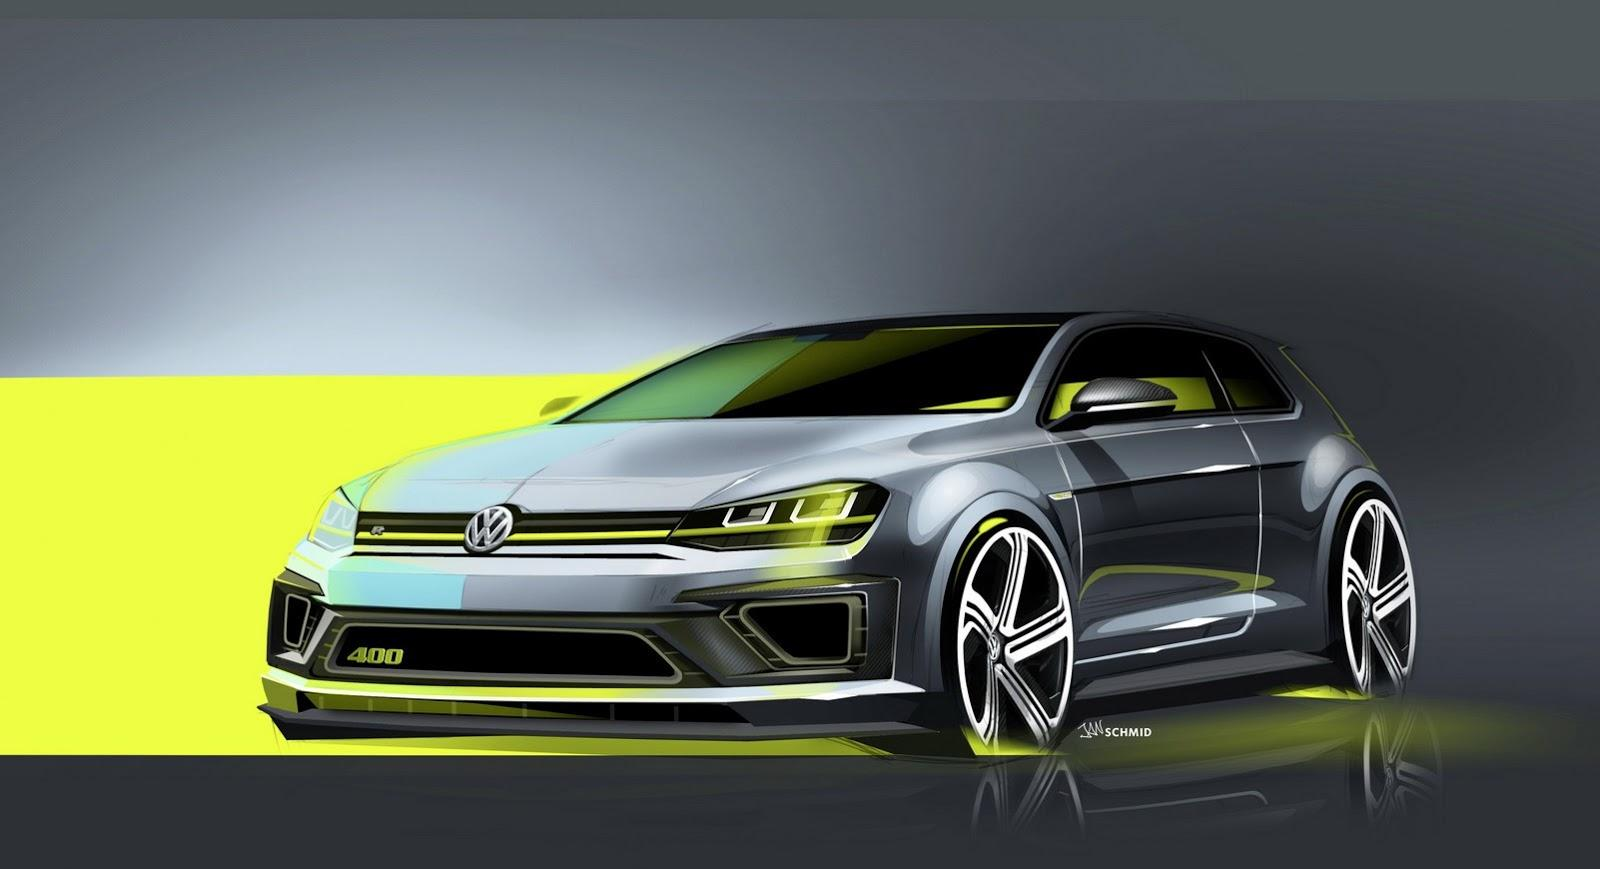 2015 golf r launch edition costs 39 000 goes on sale in january autoevolution. Black Bedroom Furniture Sets. Home Design Ideas